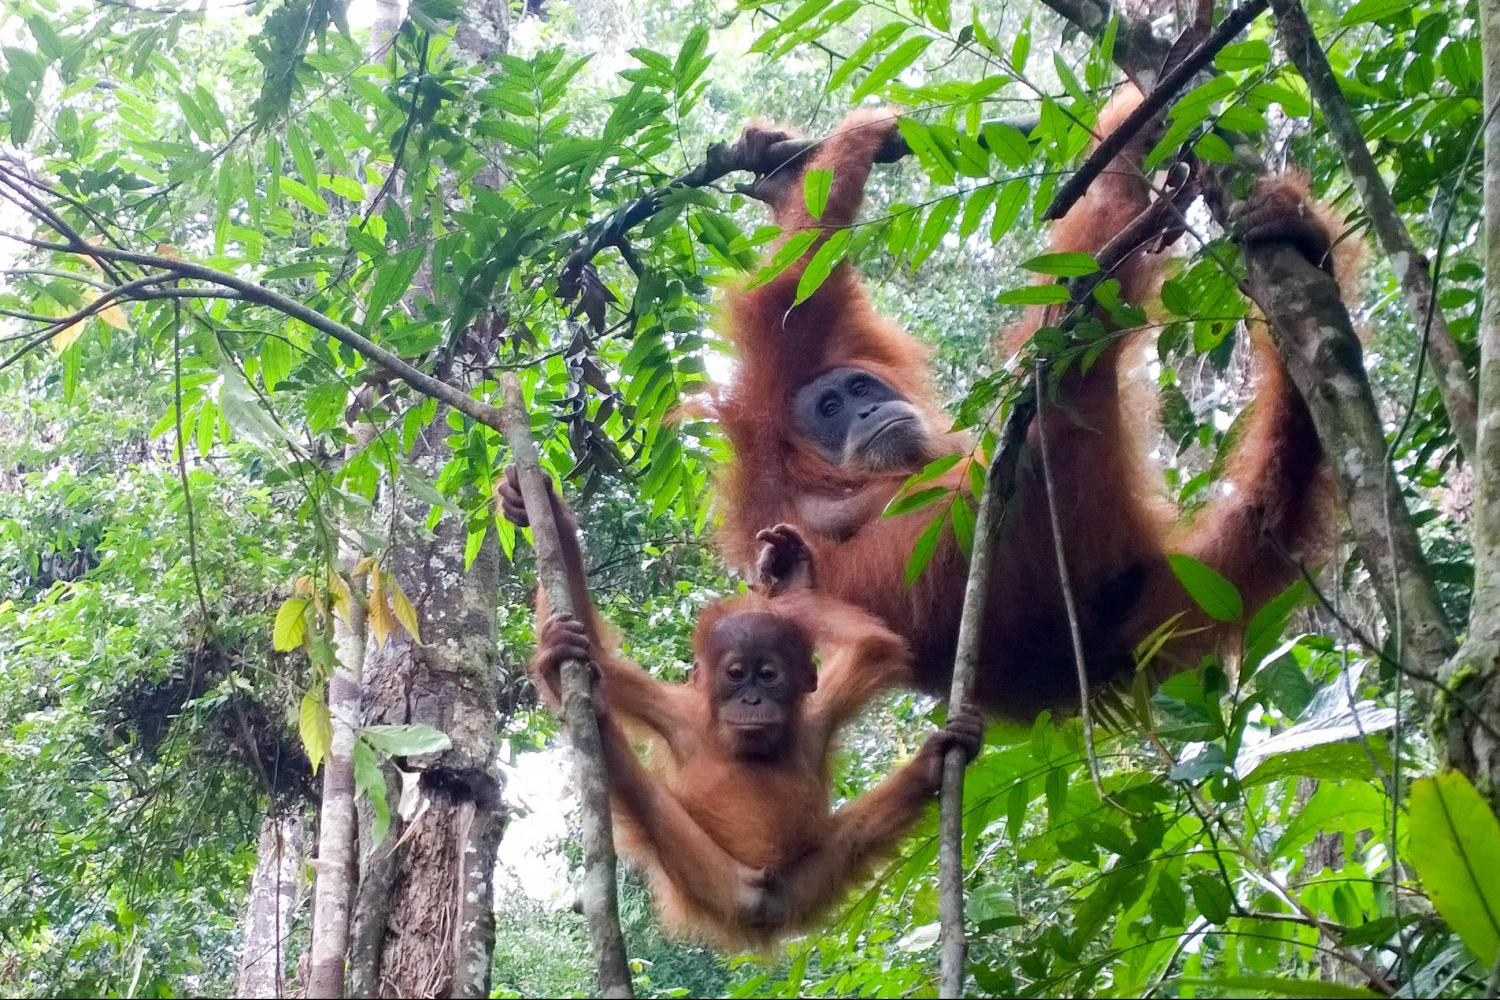 bukit lawang orangutan is rare species